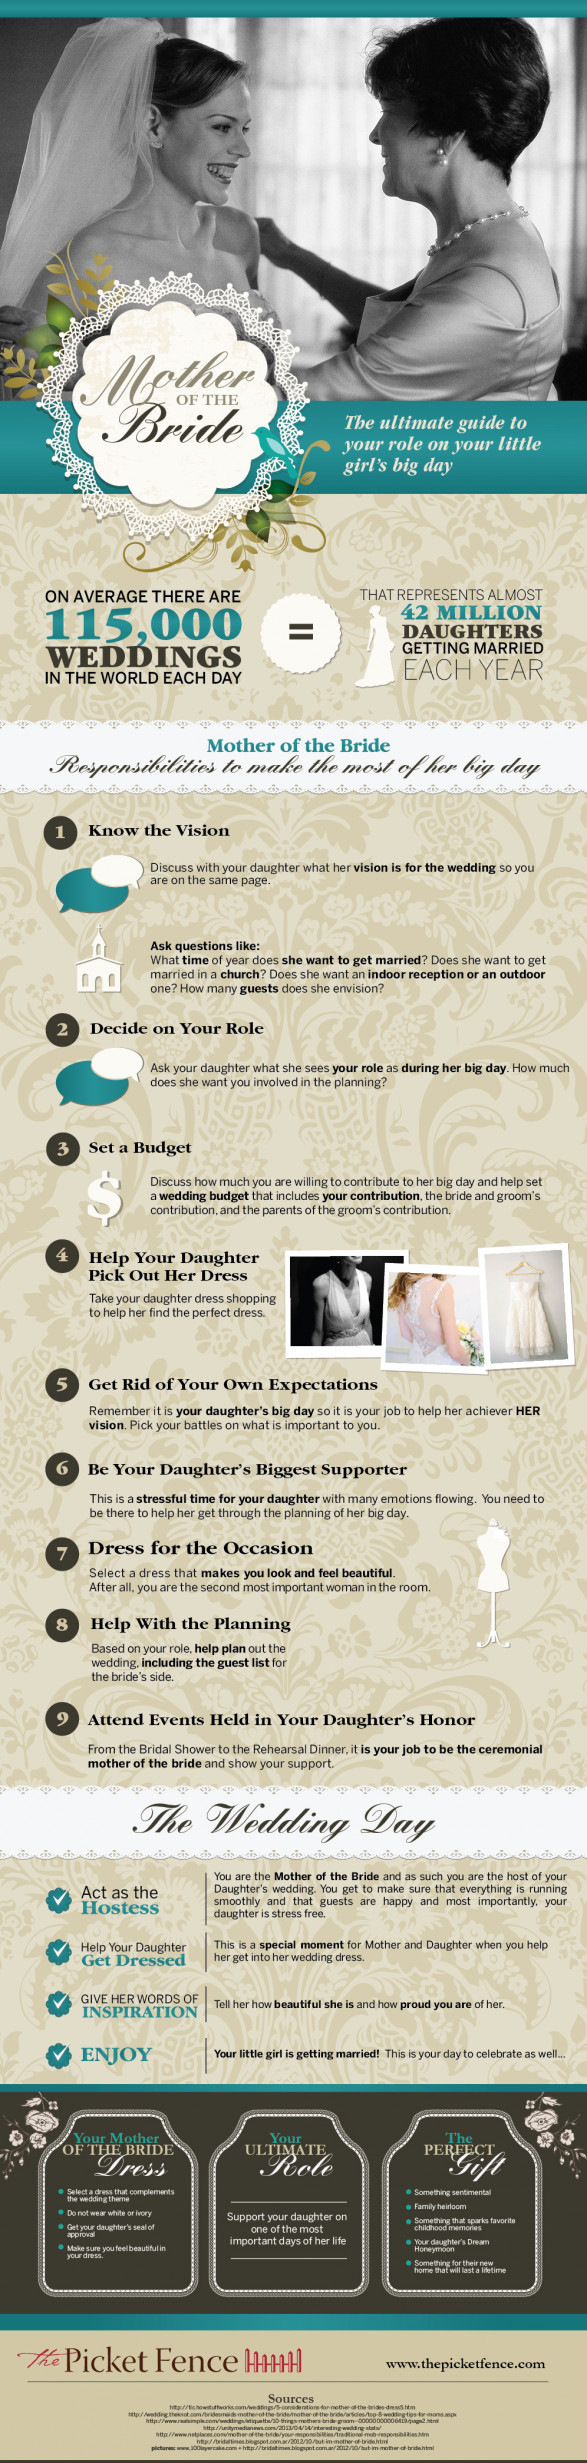 Mother of the Bride - The Ultimate Guide